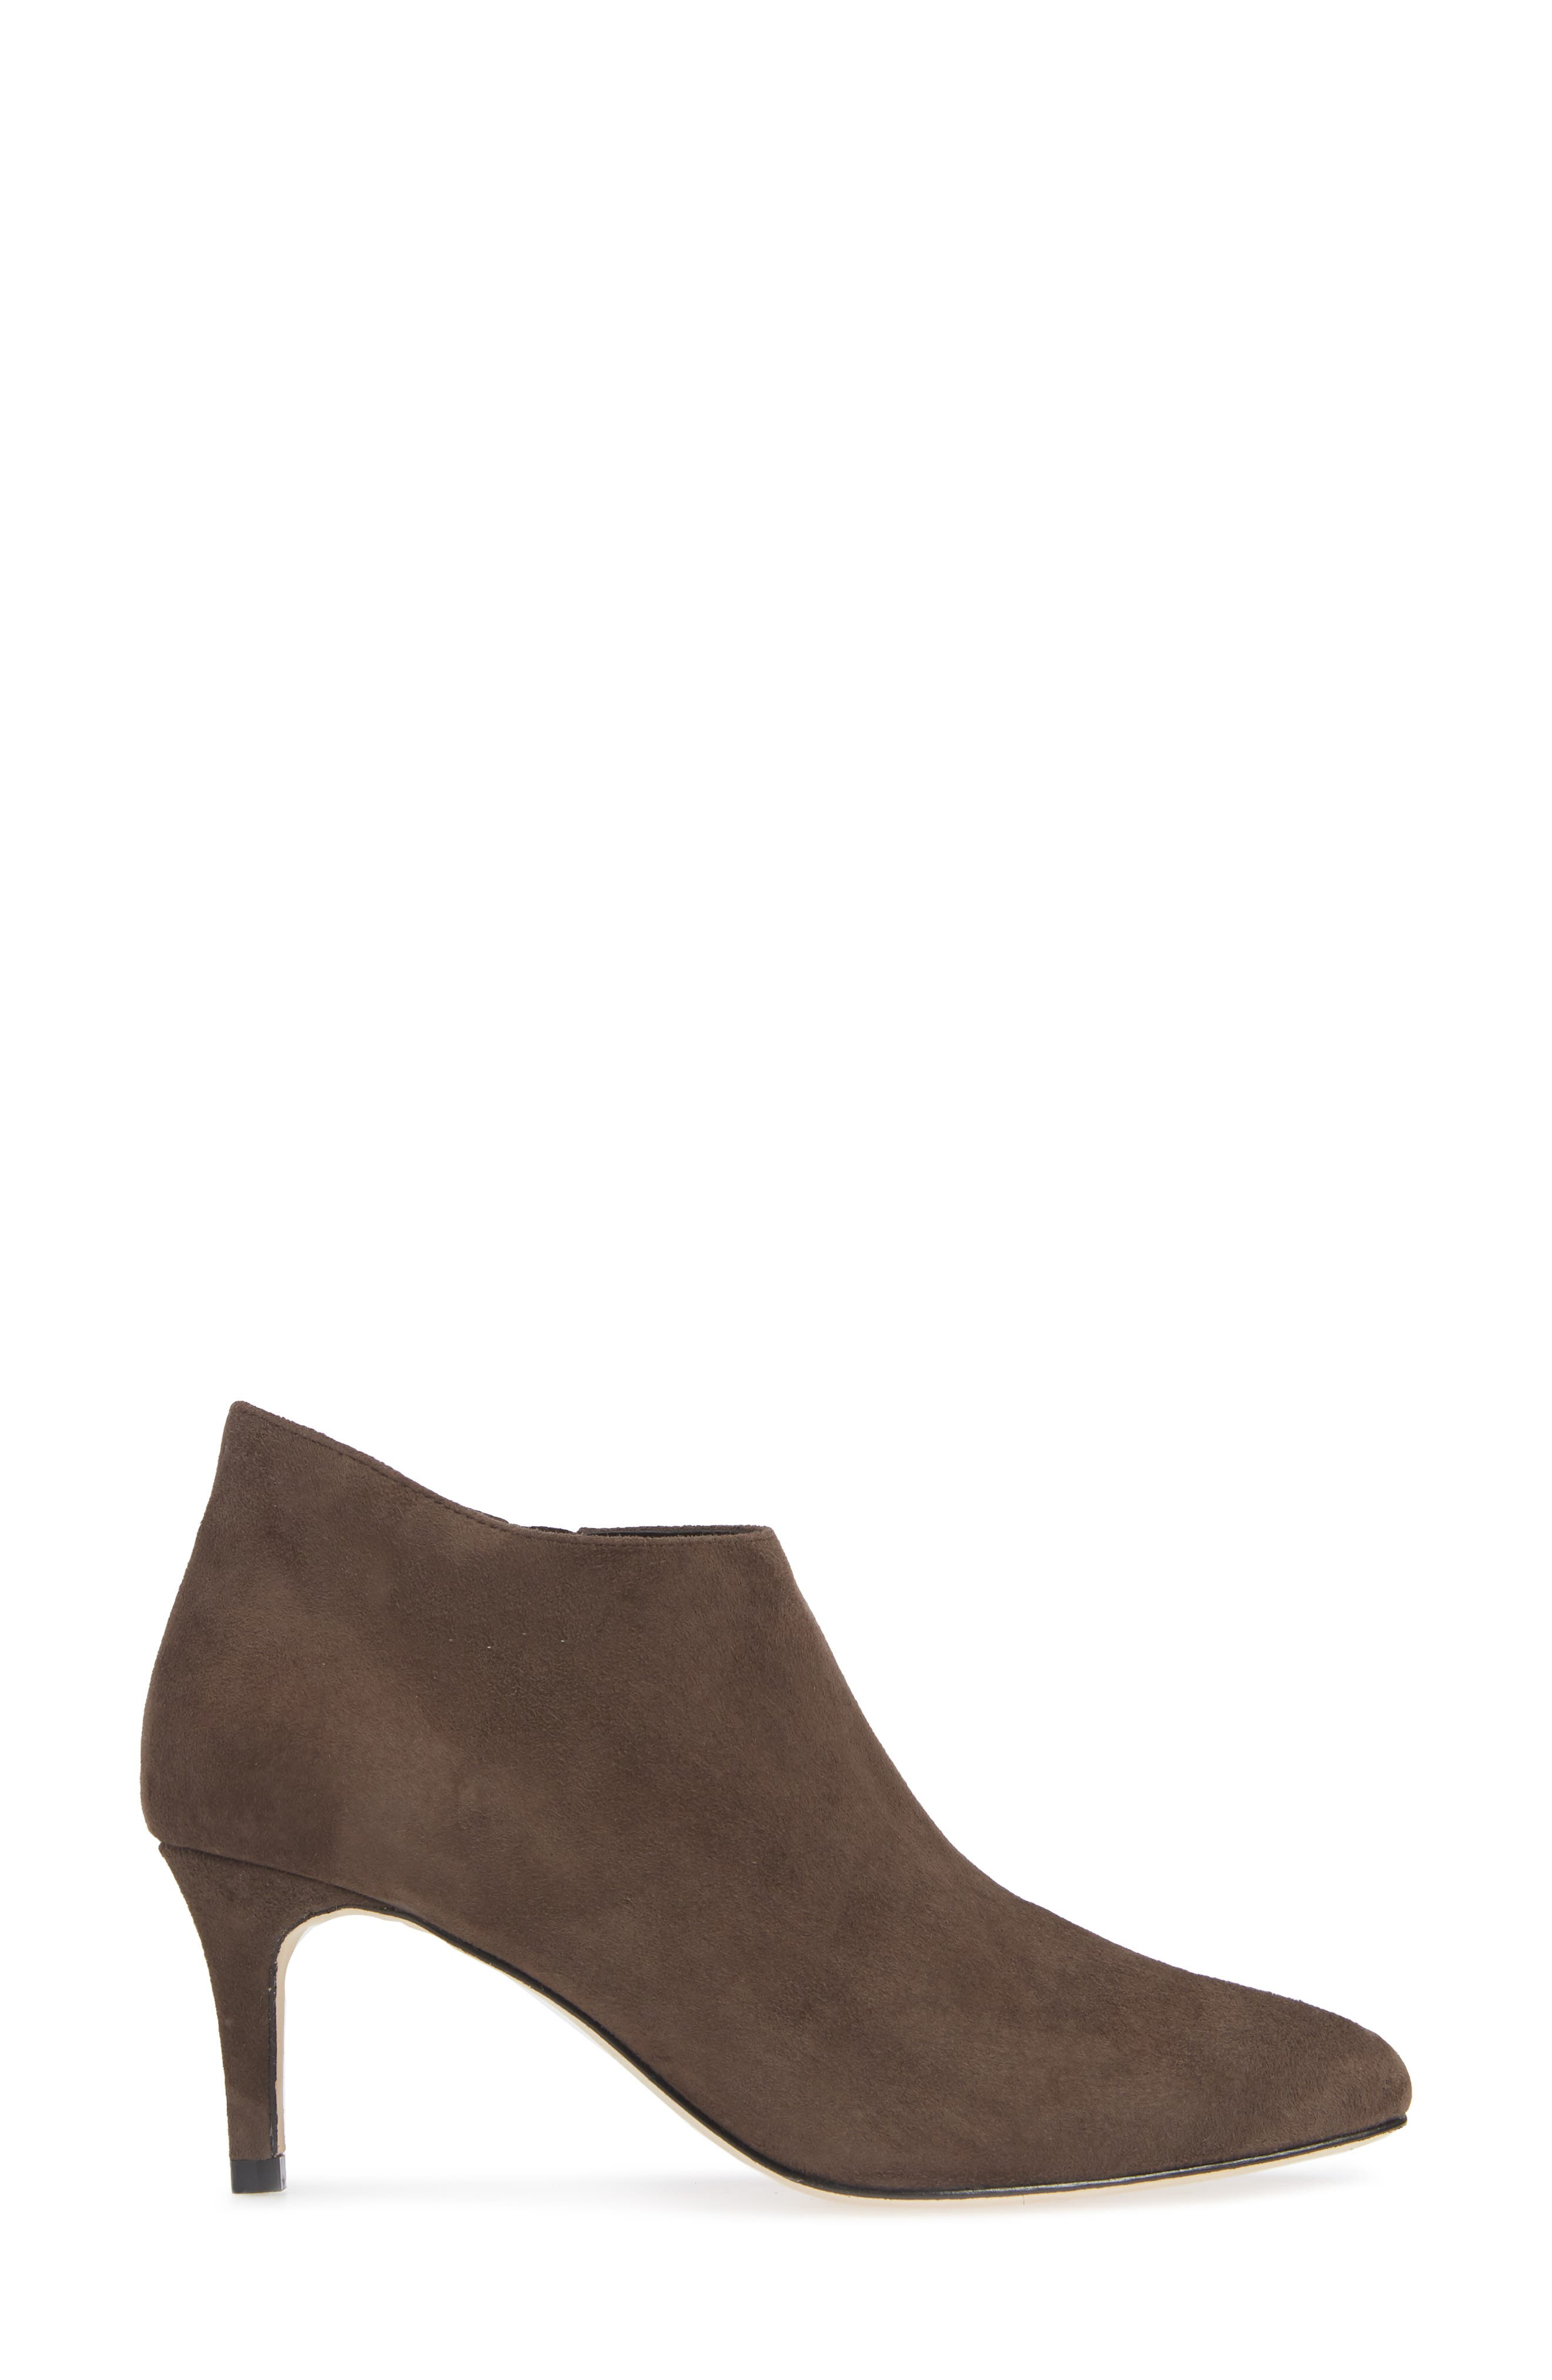 'Yelm' Almond Toe Bootie,                             Alternate thumbnail 3, color,                             MINK SUEDE